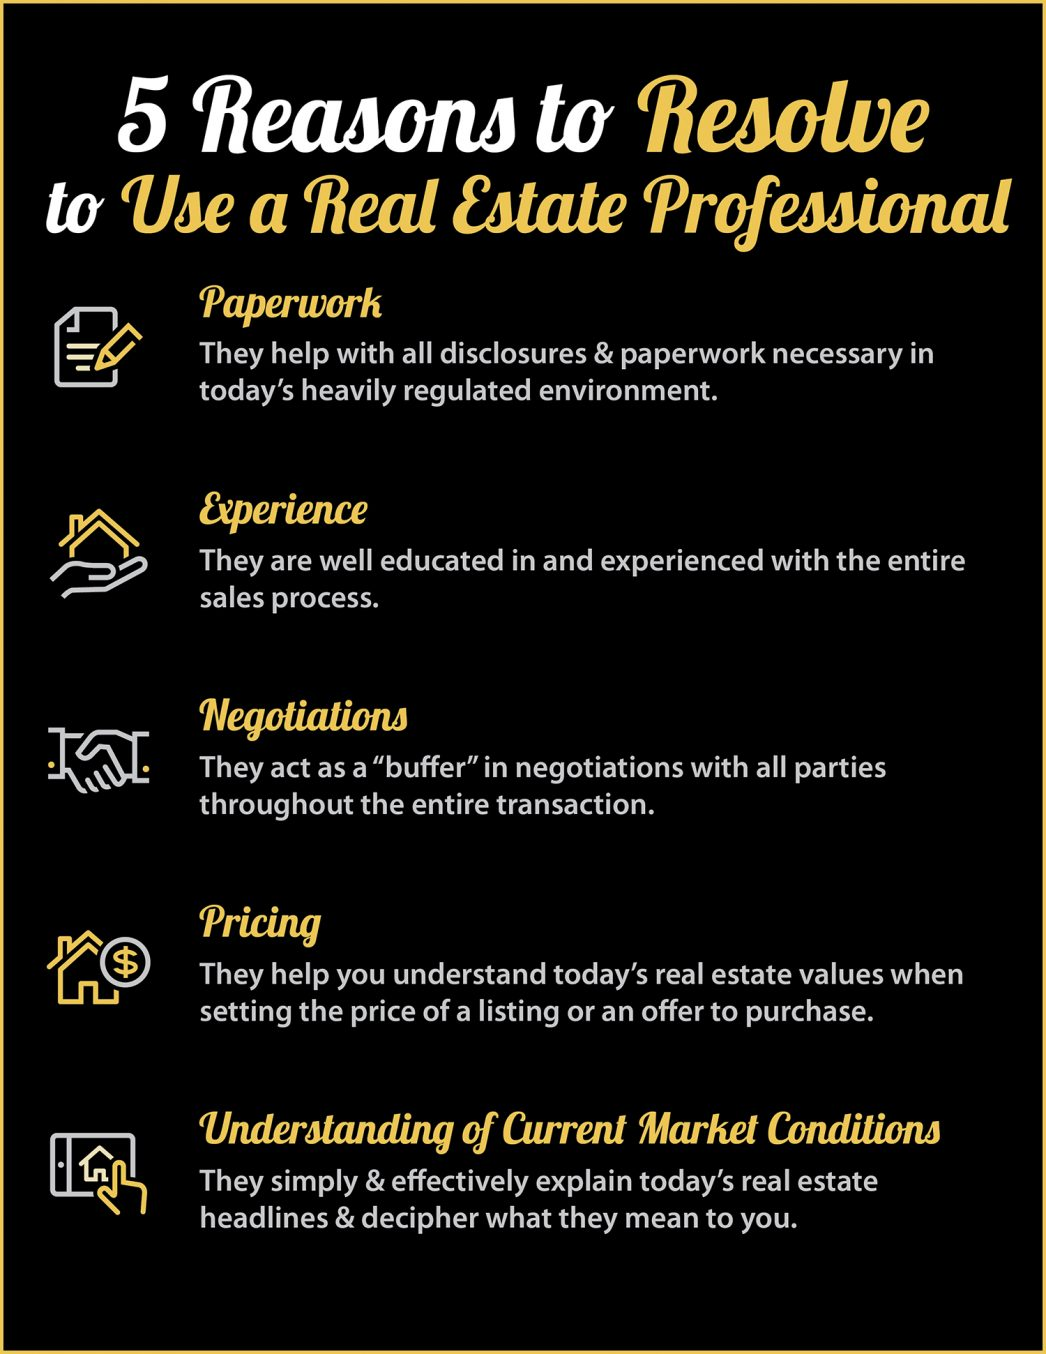 5 Reasons to Resolve to Hire a Real Estate Professional [INFOGRAPHIC] | MyKCM